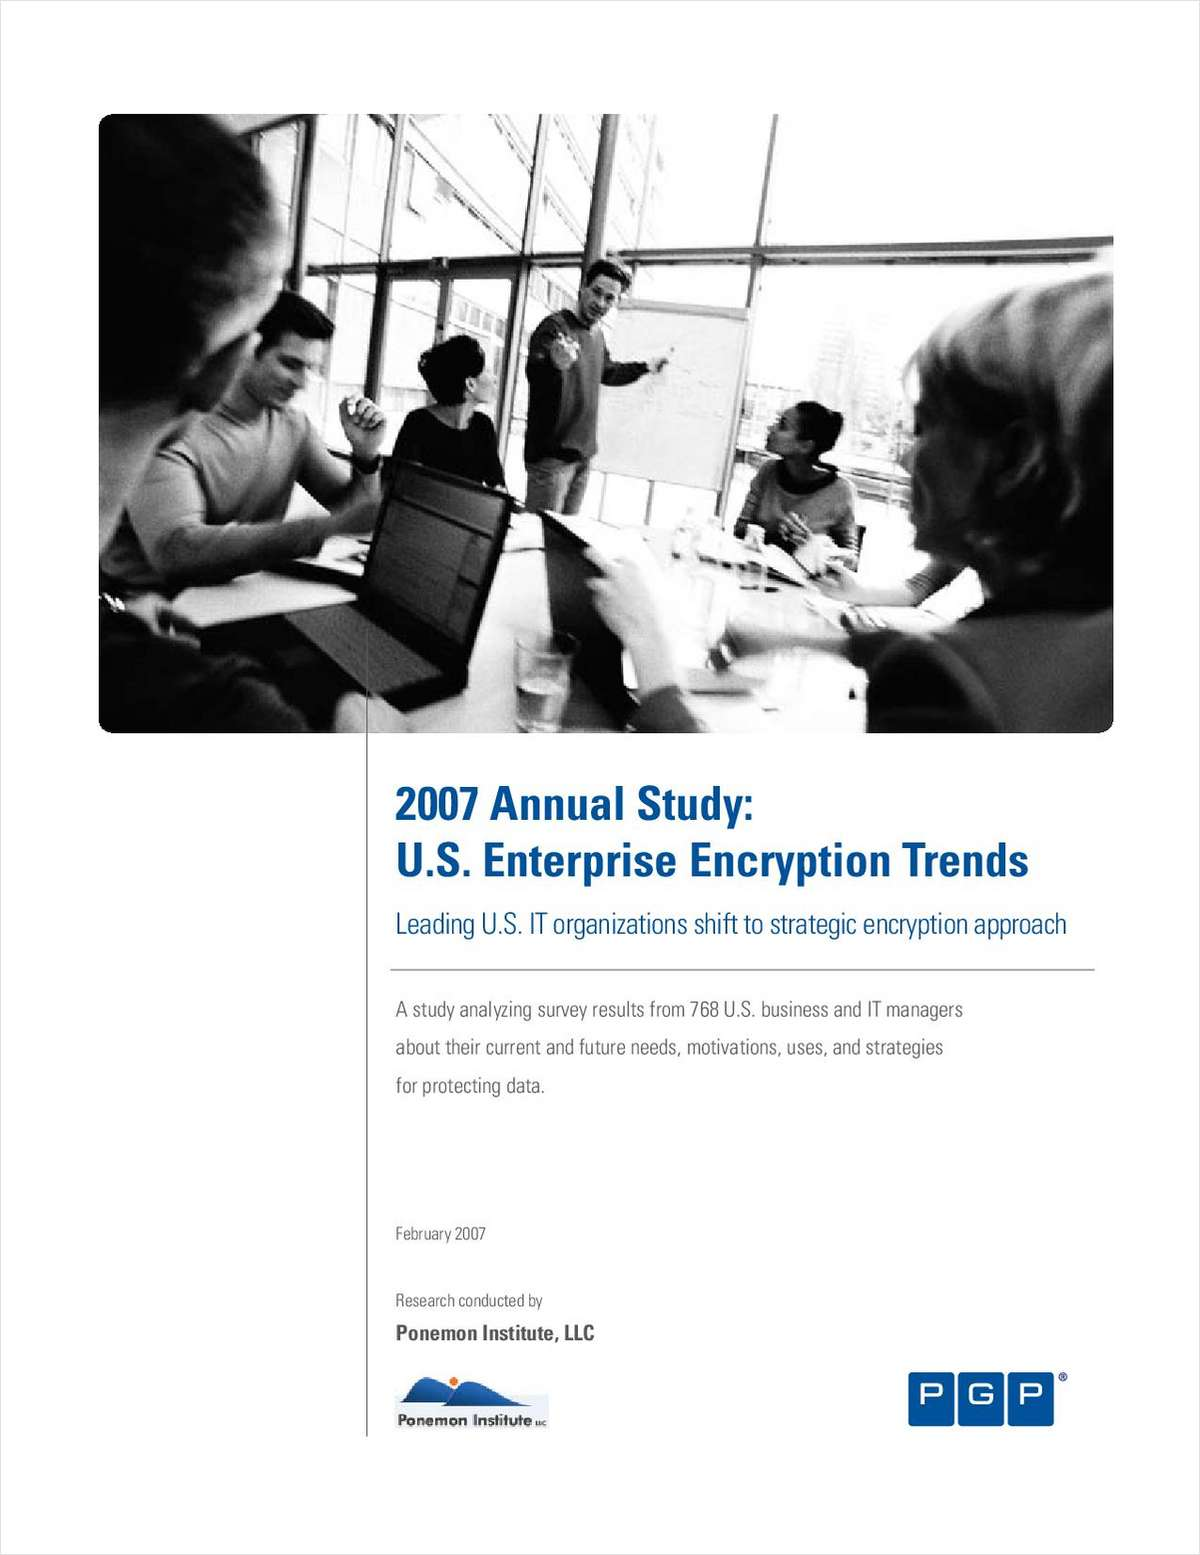 2007 Annual Study: U.S. Enterprise Encryption Trends